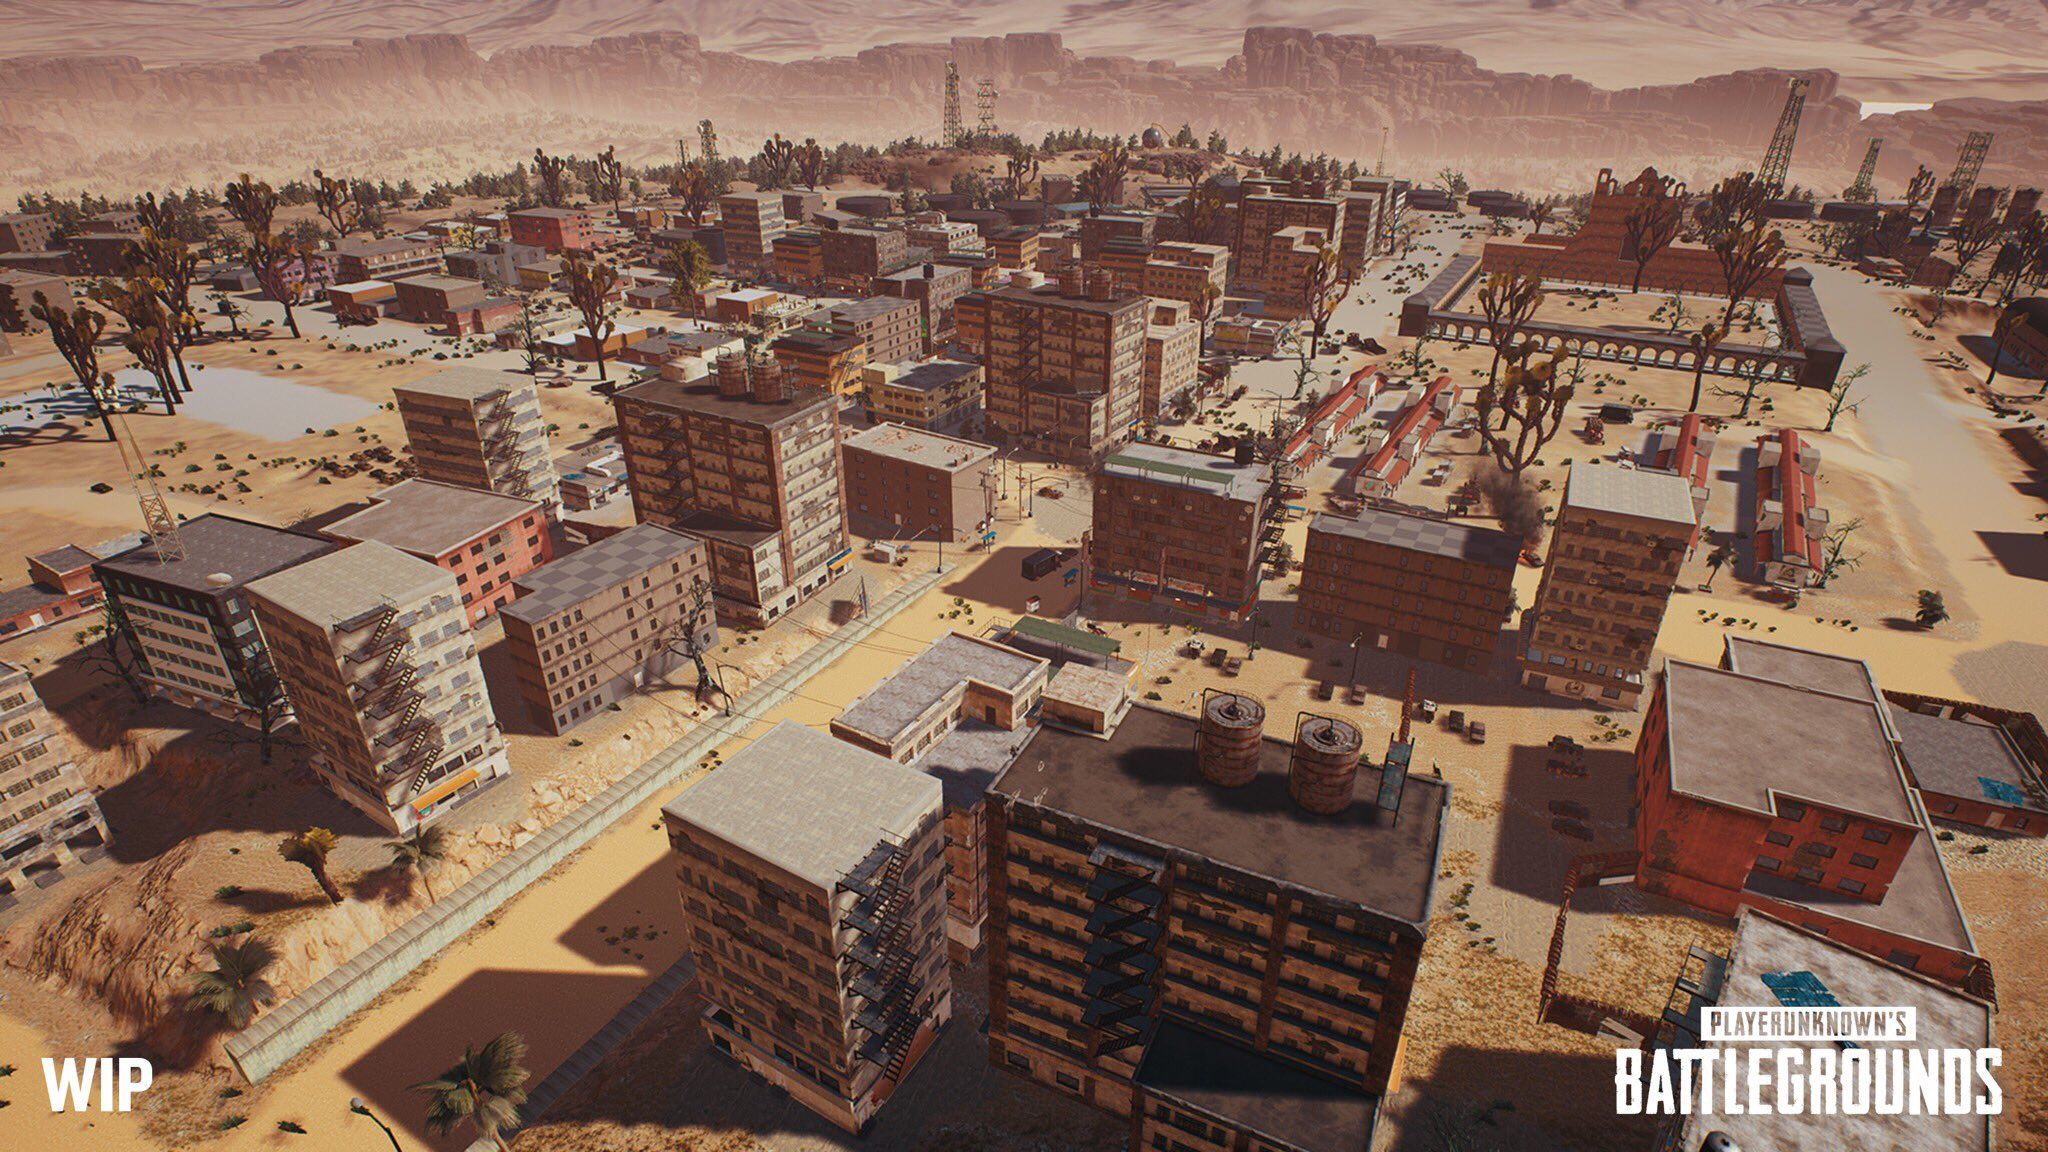 PUBG desert map will get gameplay reveal next week